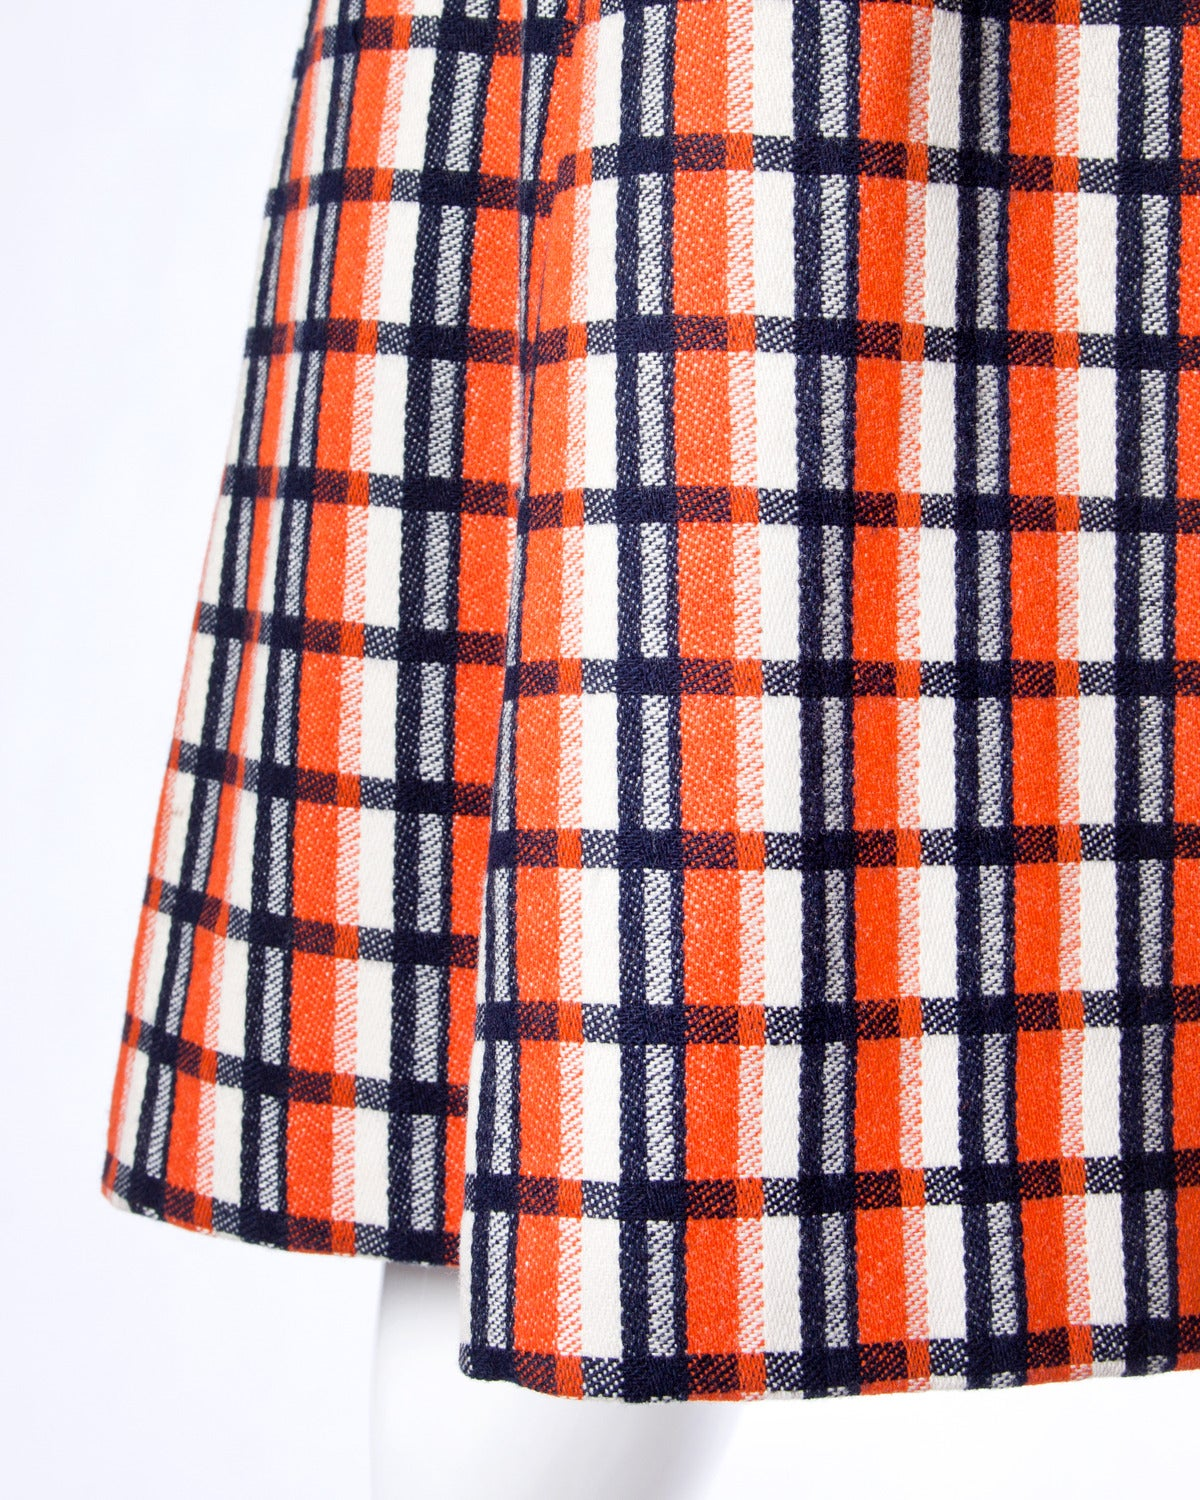 Bill Blass for Maurice Rentner 1960s Wool Plaid Jacket + Skirt Suit Ensemble In Excellent Condition For Sale In Sparks, NV